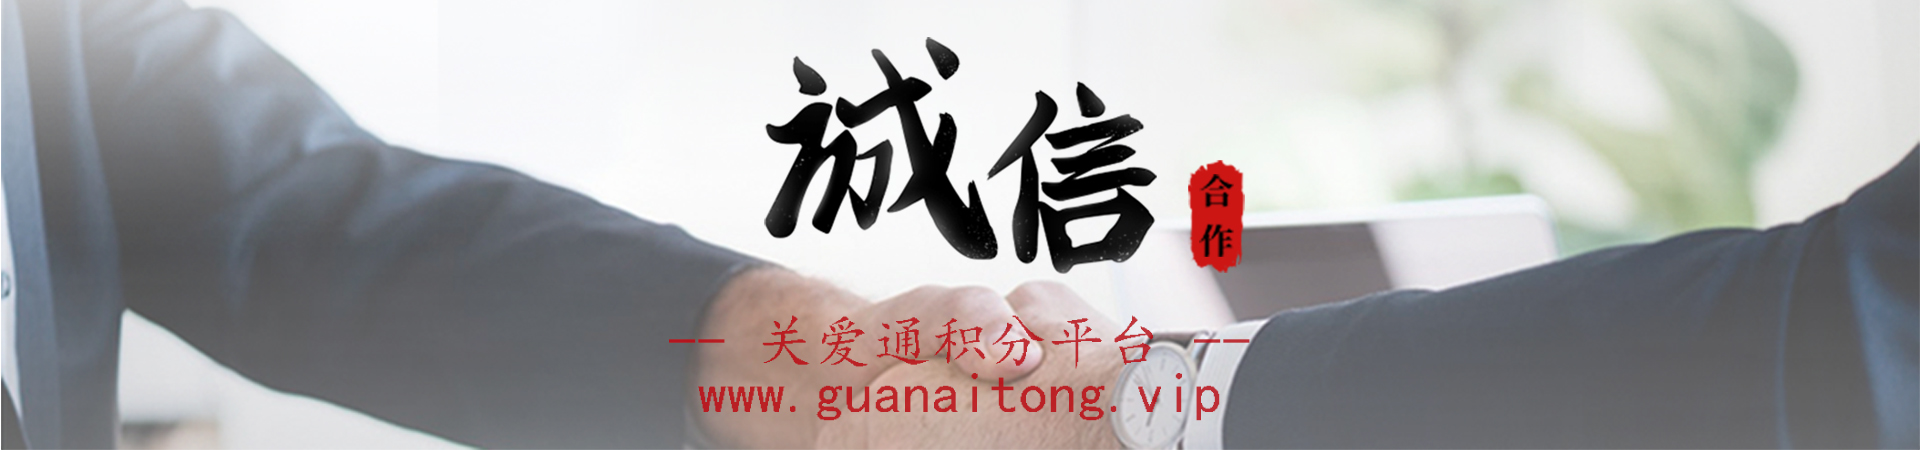 http://www.guanaitong.vip/data/upload/202006/20200629143103_525.jpg